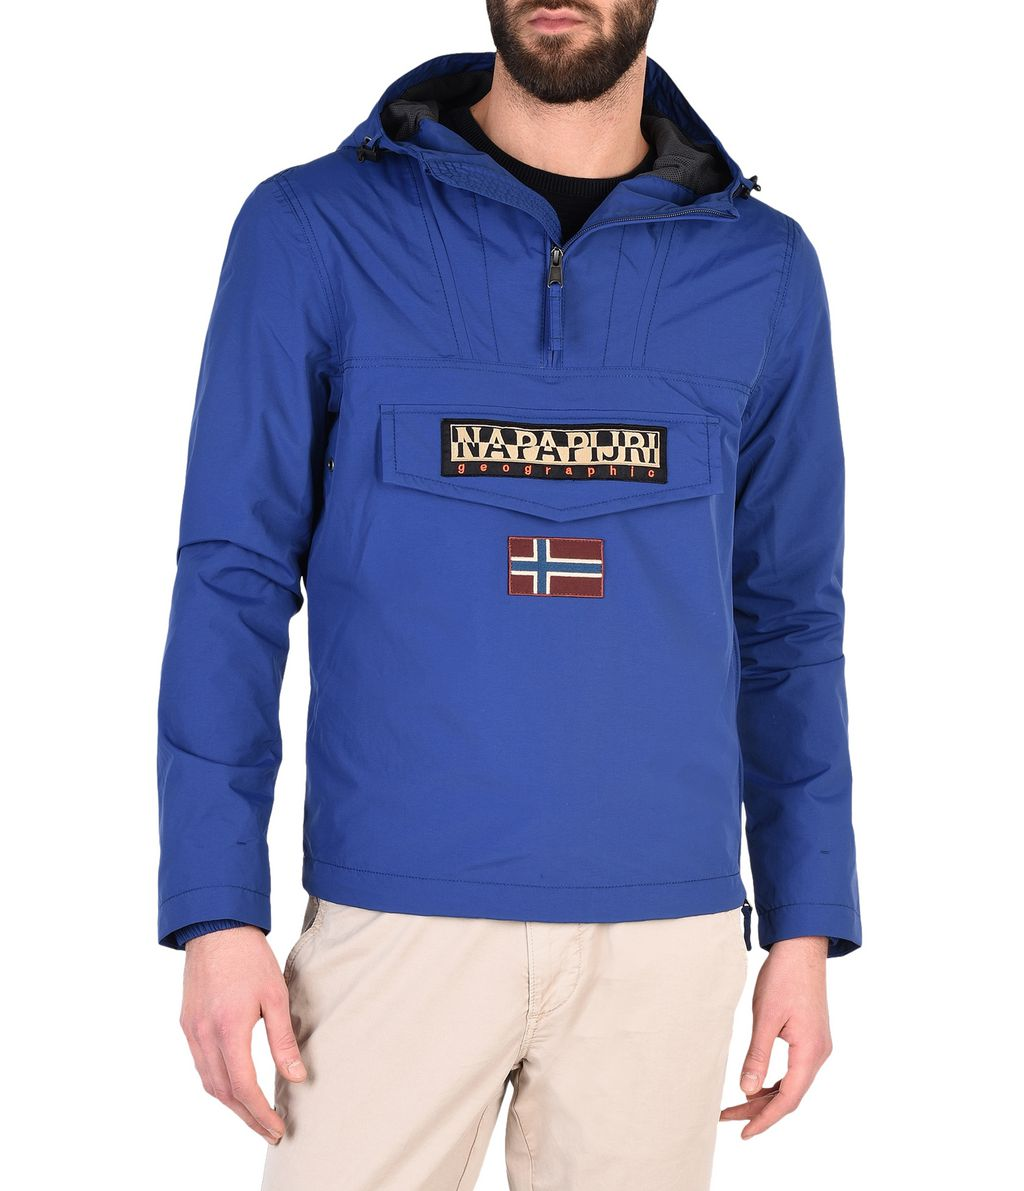 NAPAPIJRI RAINFOREST SLIM SUMMER MAN RAINFOREST,BLUE